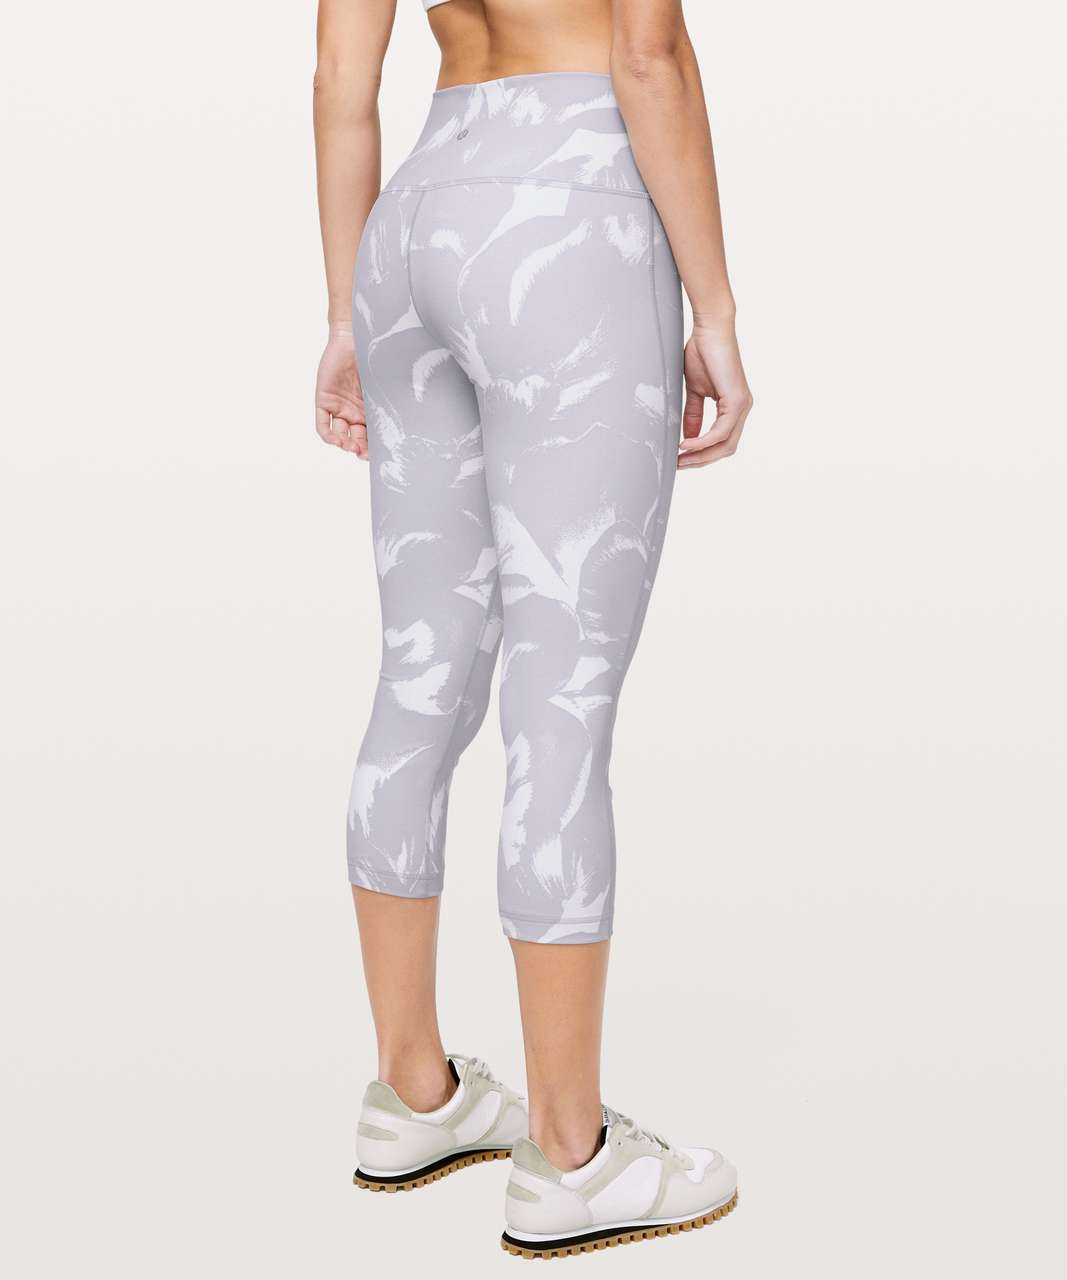 "Lululemon Wunder Under Crop (High-Rise) *Full-On Luon 21"" - Flower Pop White Silver Lilac"